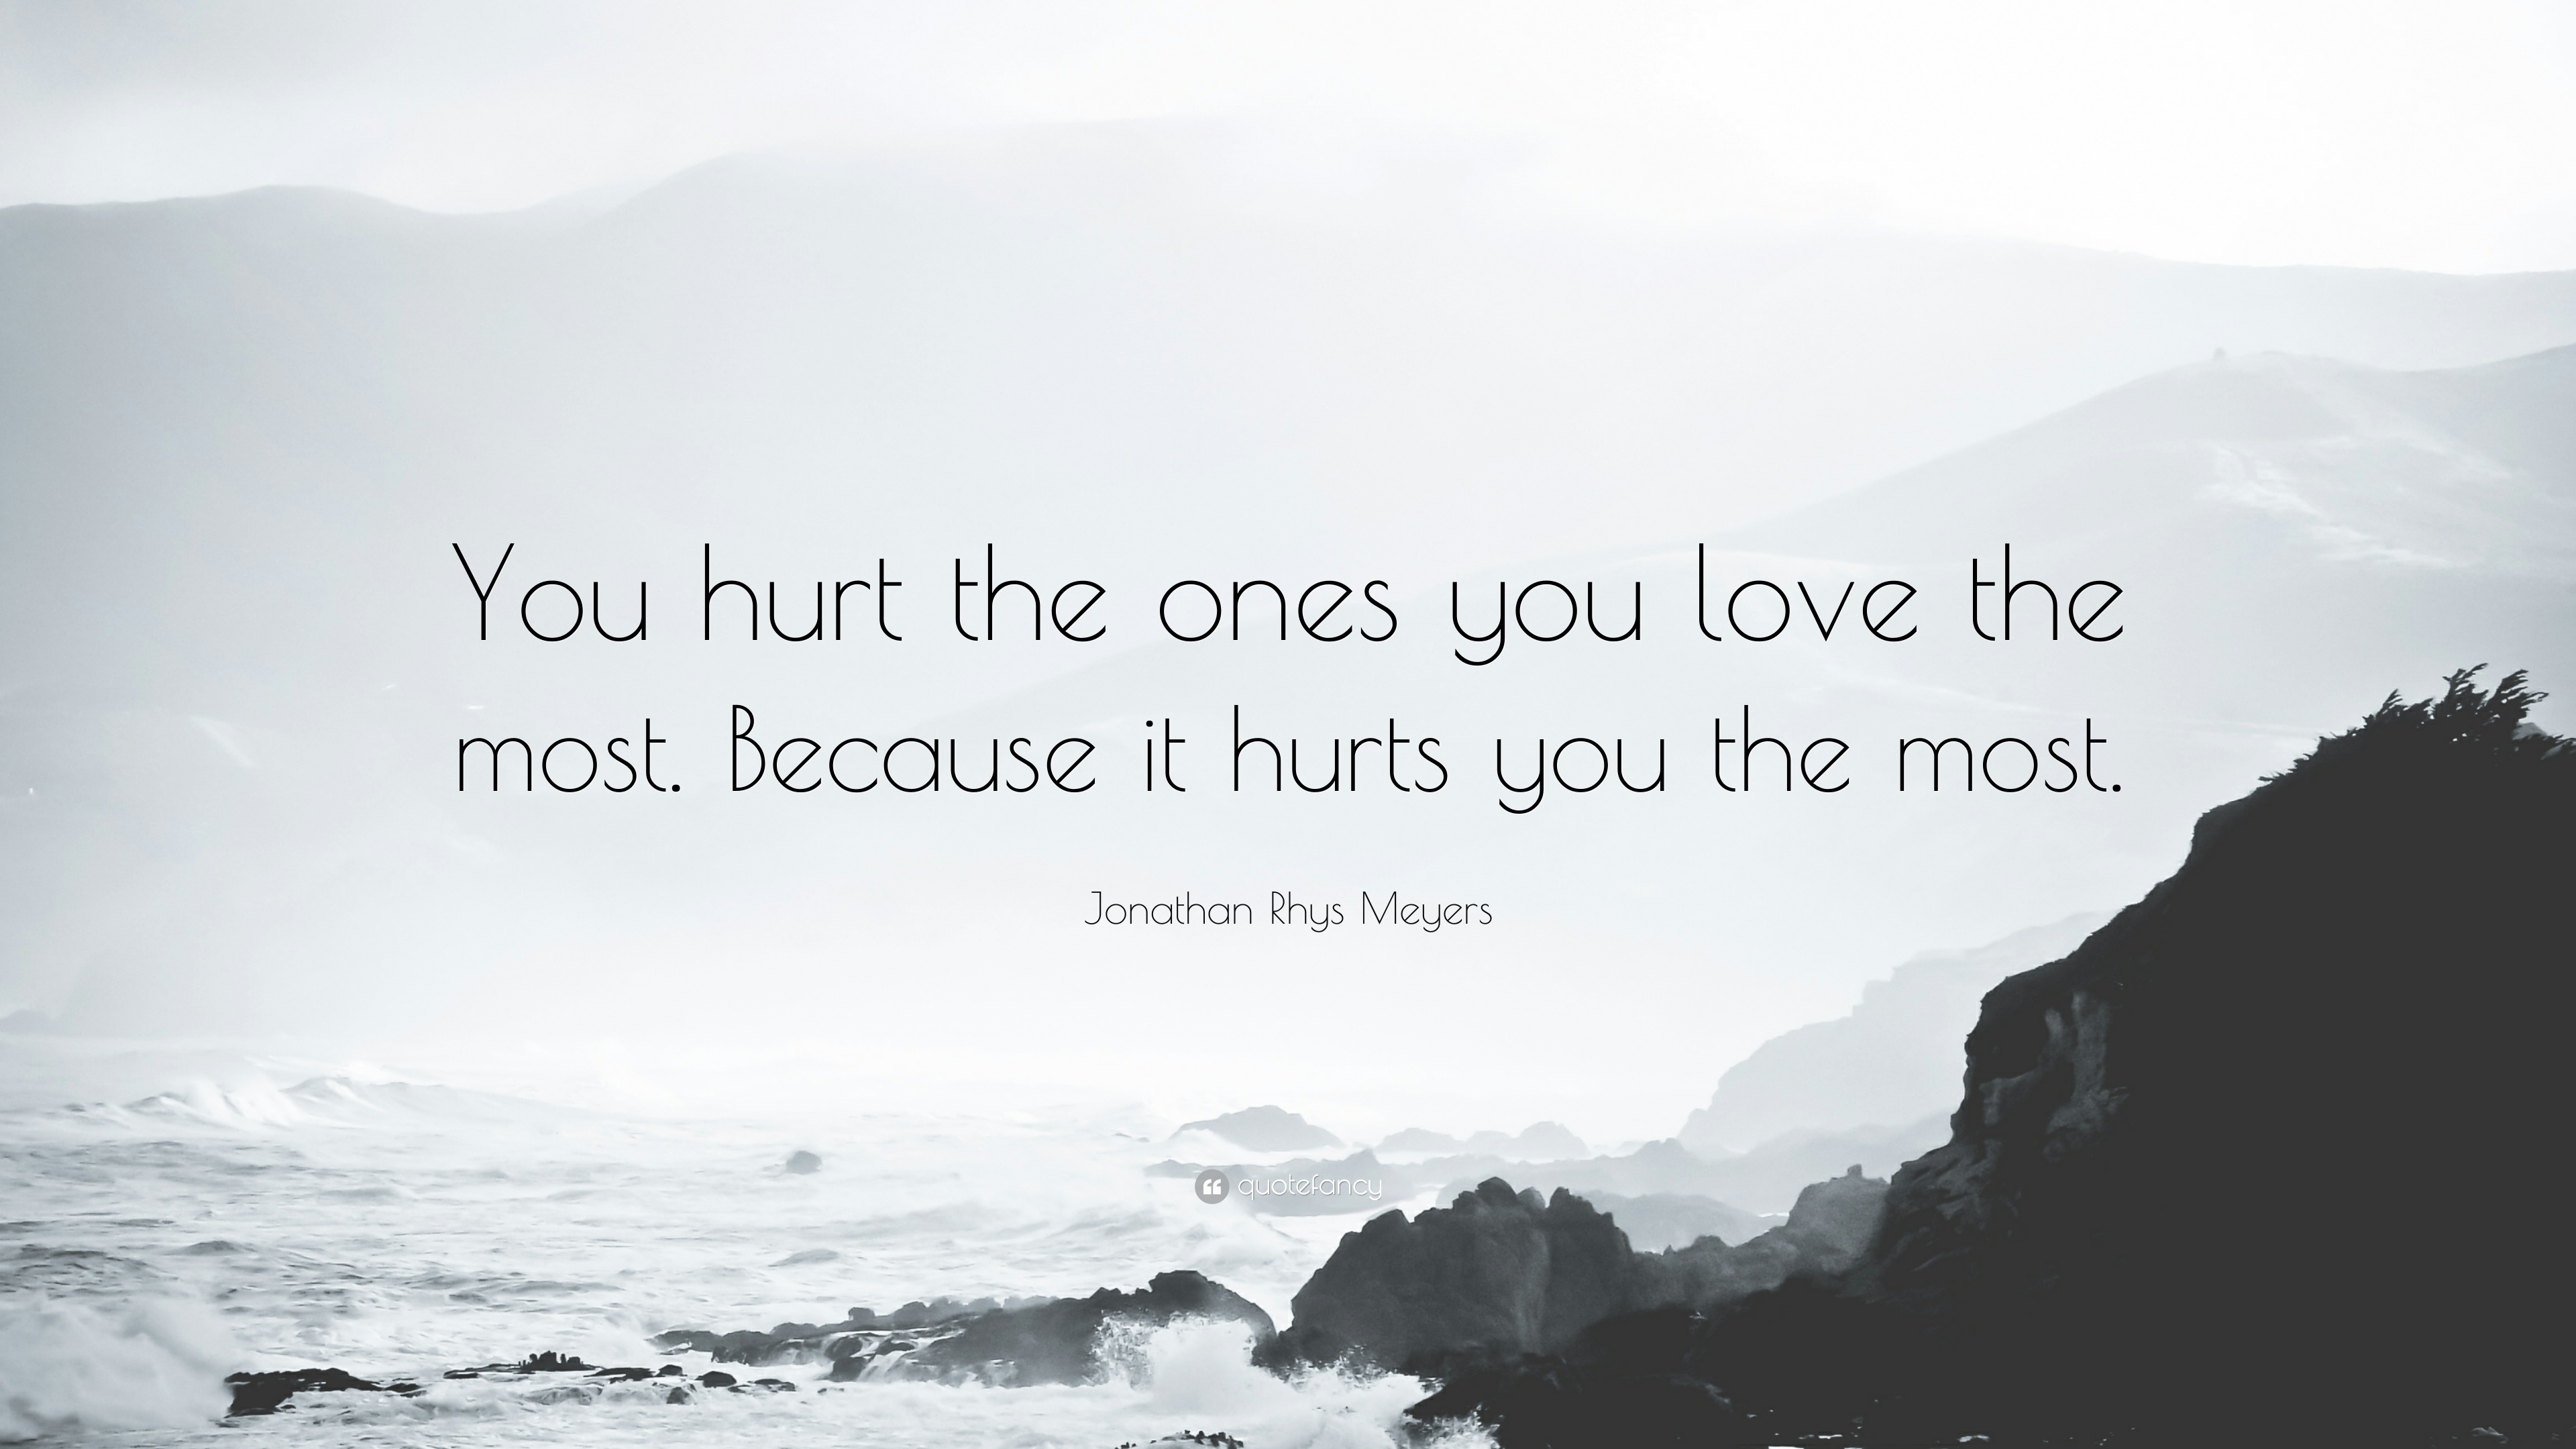 Jonathan Rhys Meyers Quote You Hurt The Ones You Love The Most